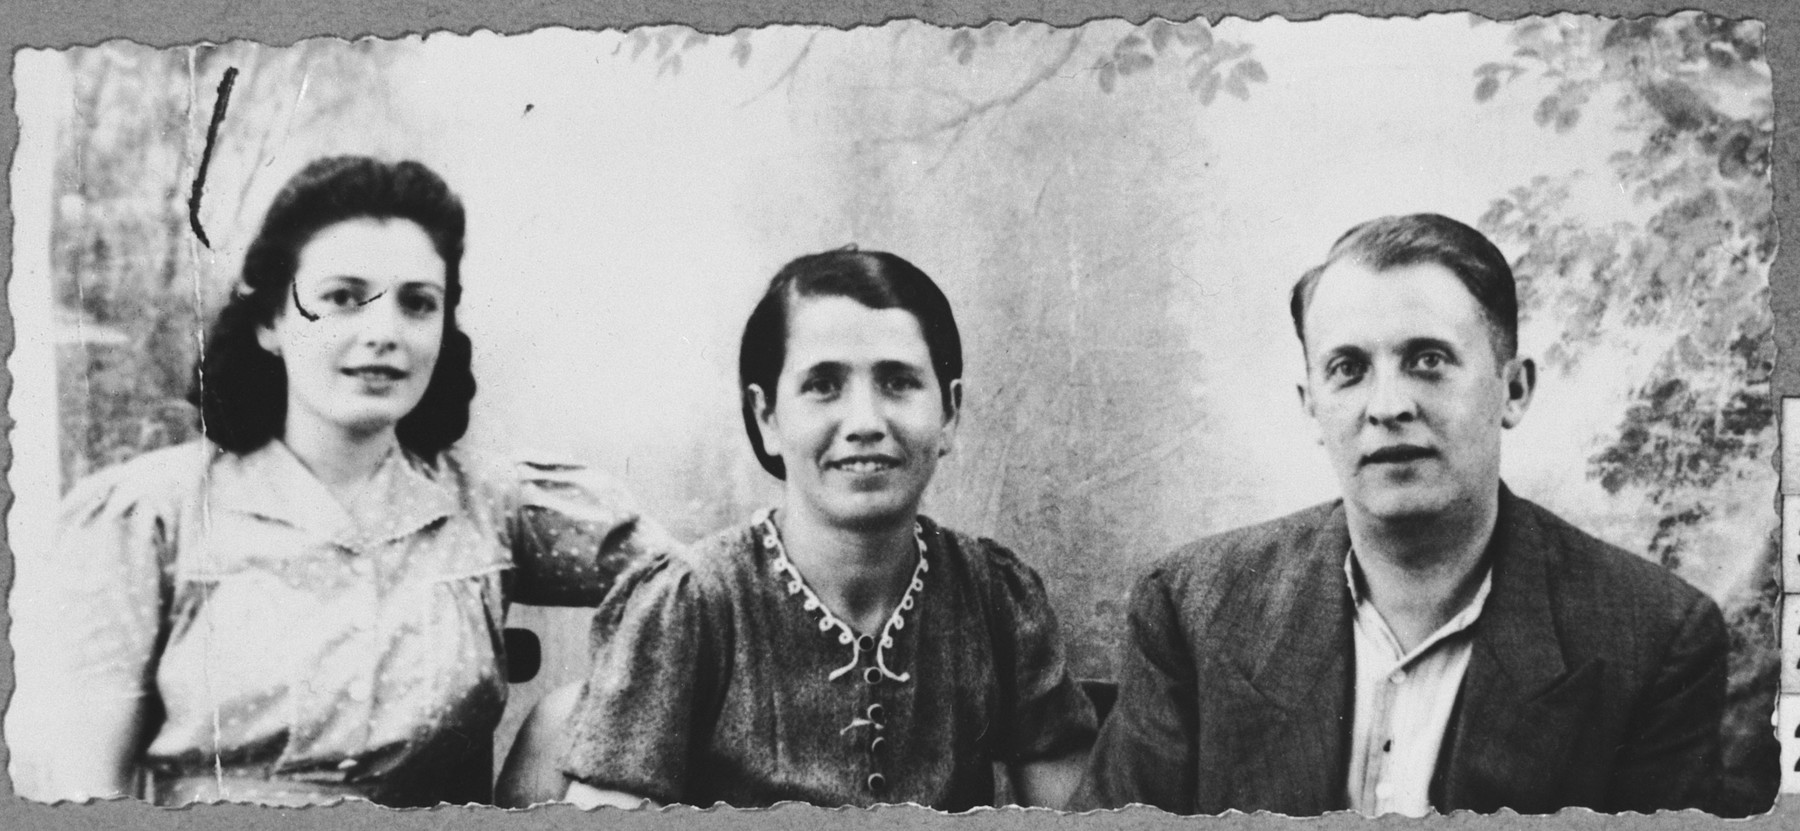 Portrait of Lazar Ischach, son of Yosef Ischach, his wife Sara, and his daughter Alegra.  Lazar was a grocer and Alegra, a student.  They lived at Drinksa 77 in Bitola.